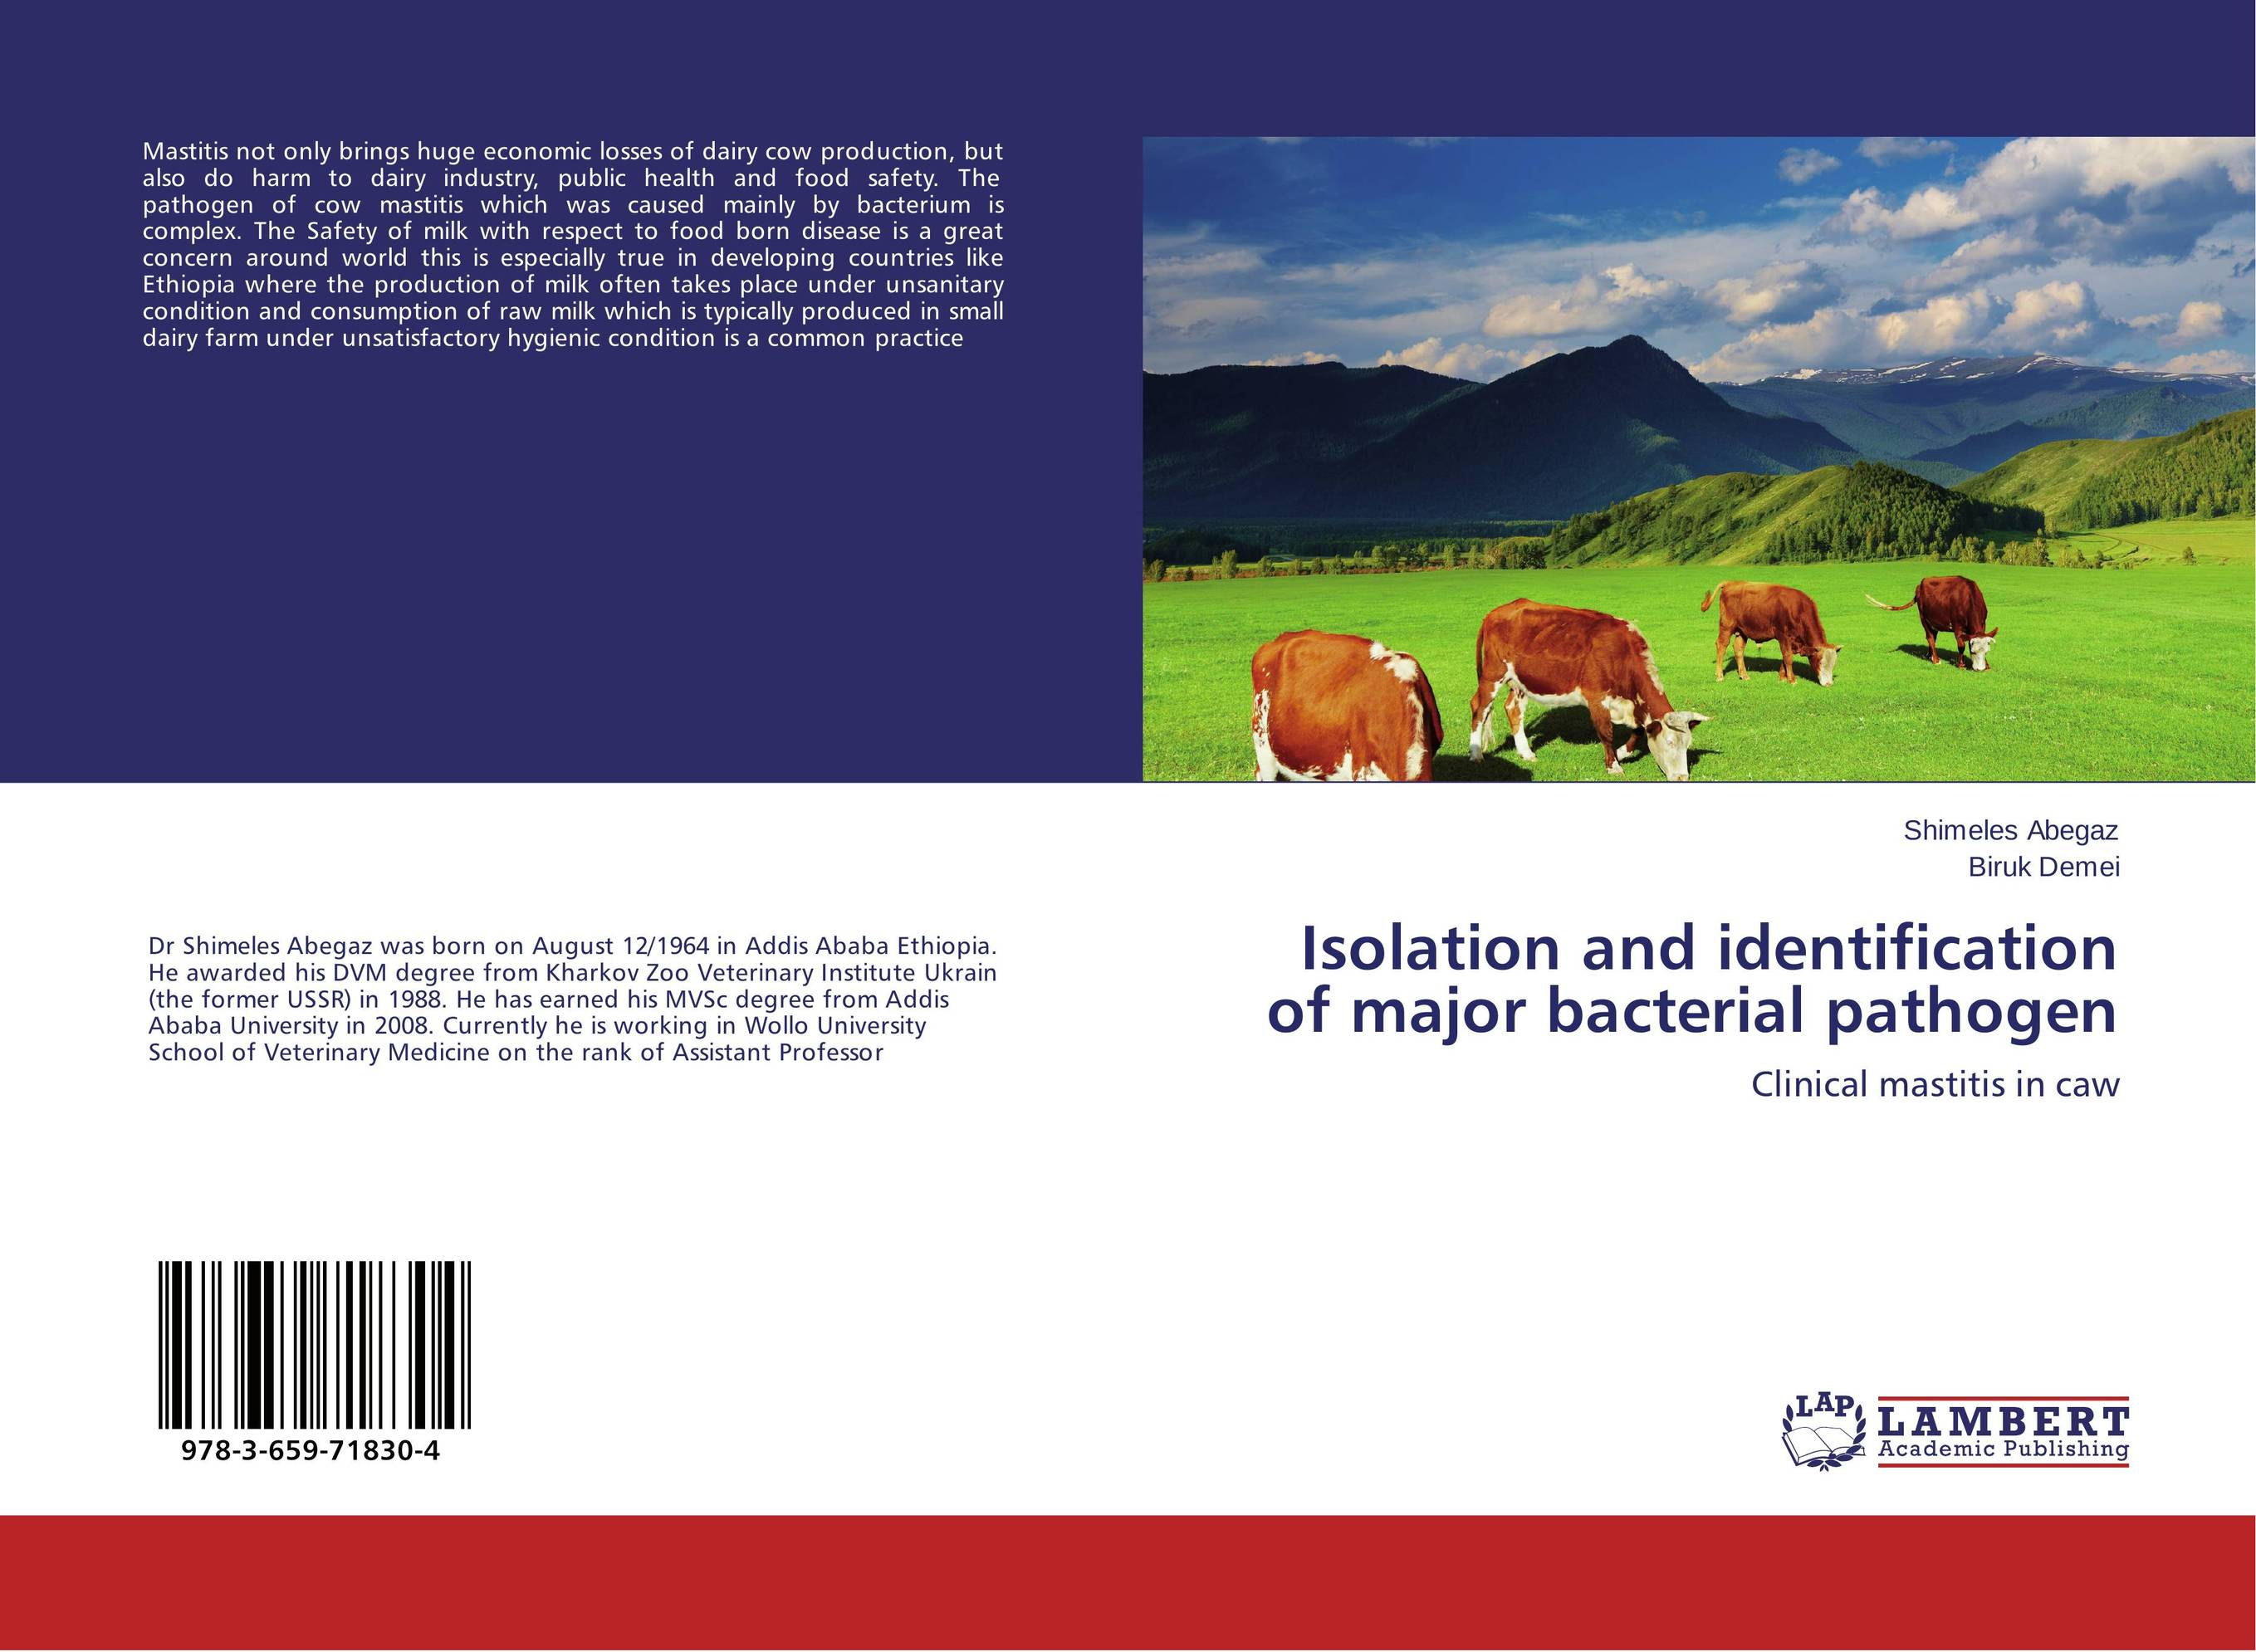 Isolation and identification of major bacterial pathogen claw disorders in dairy cows under smallholder zero grazing units